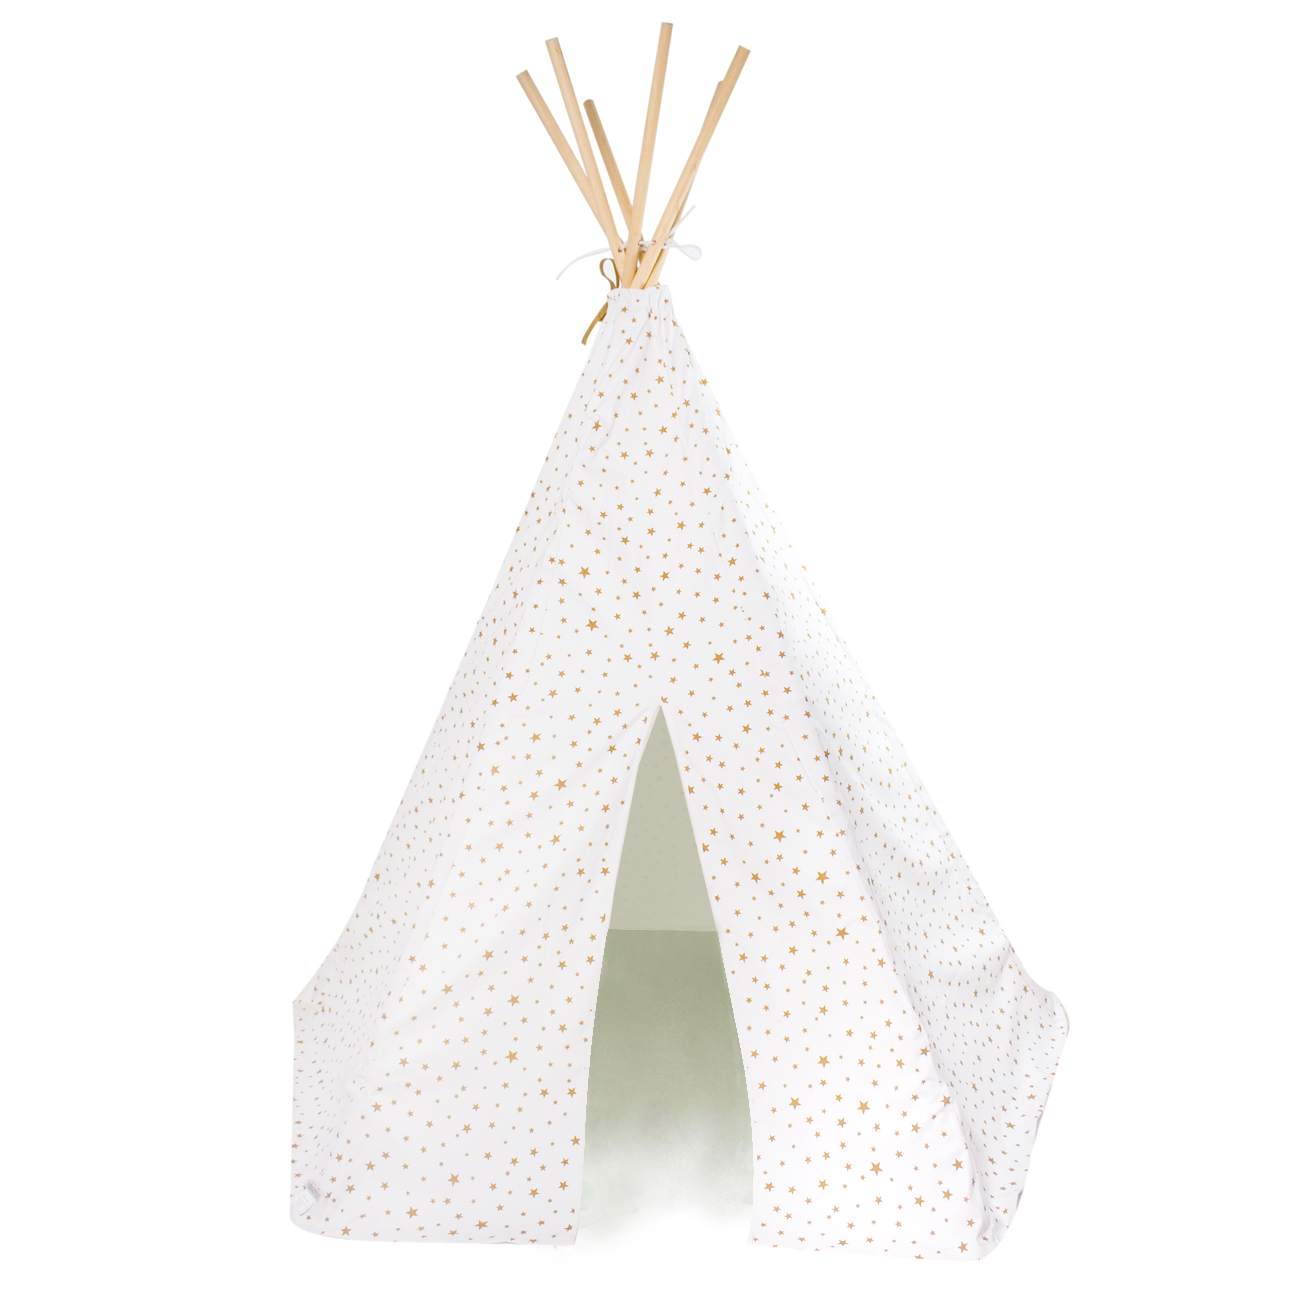 tipi arizona etoiles nobodinoz pour chambre enfant les enfants du design. Black Bedroom Furniture Sets. Home Design Ideas